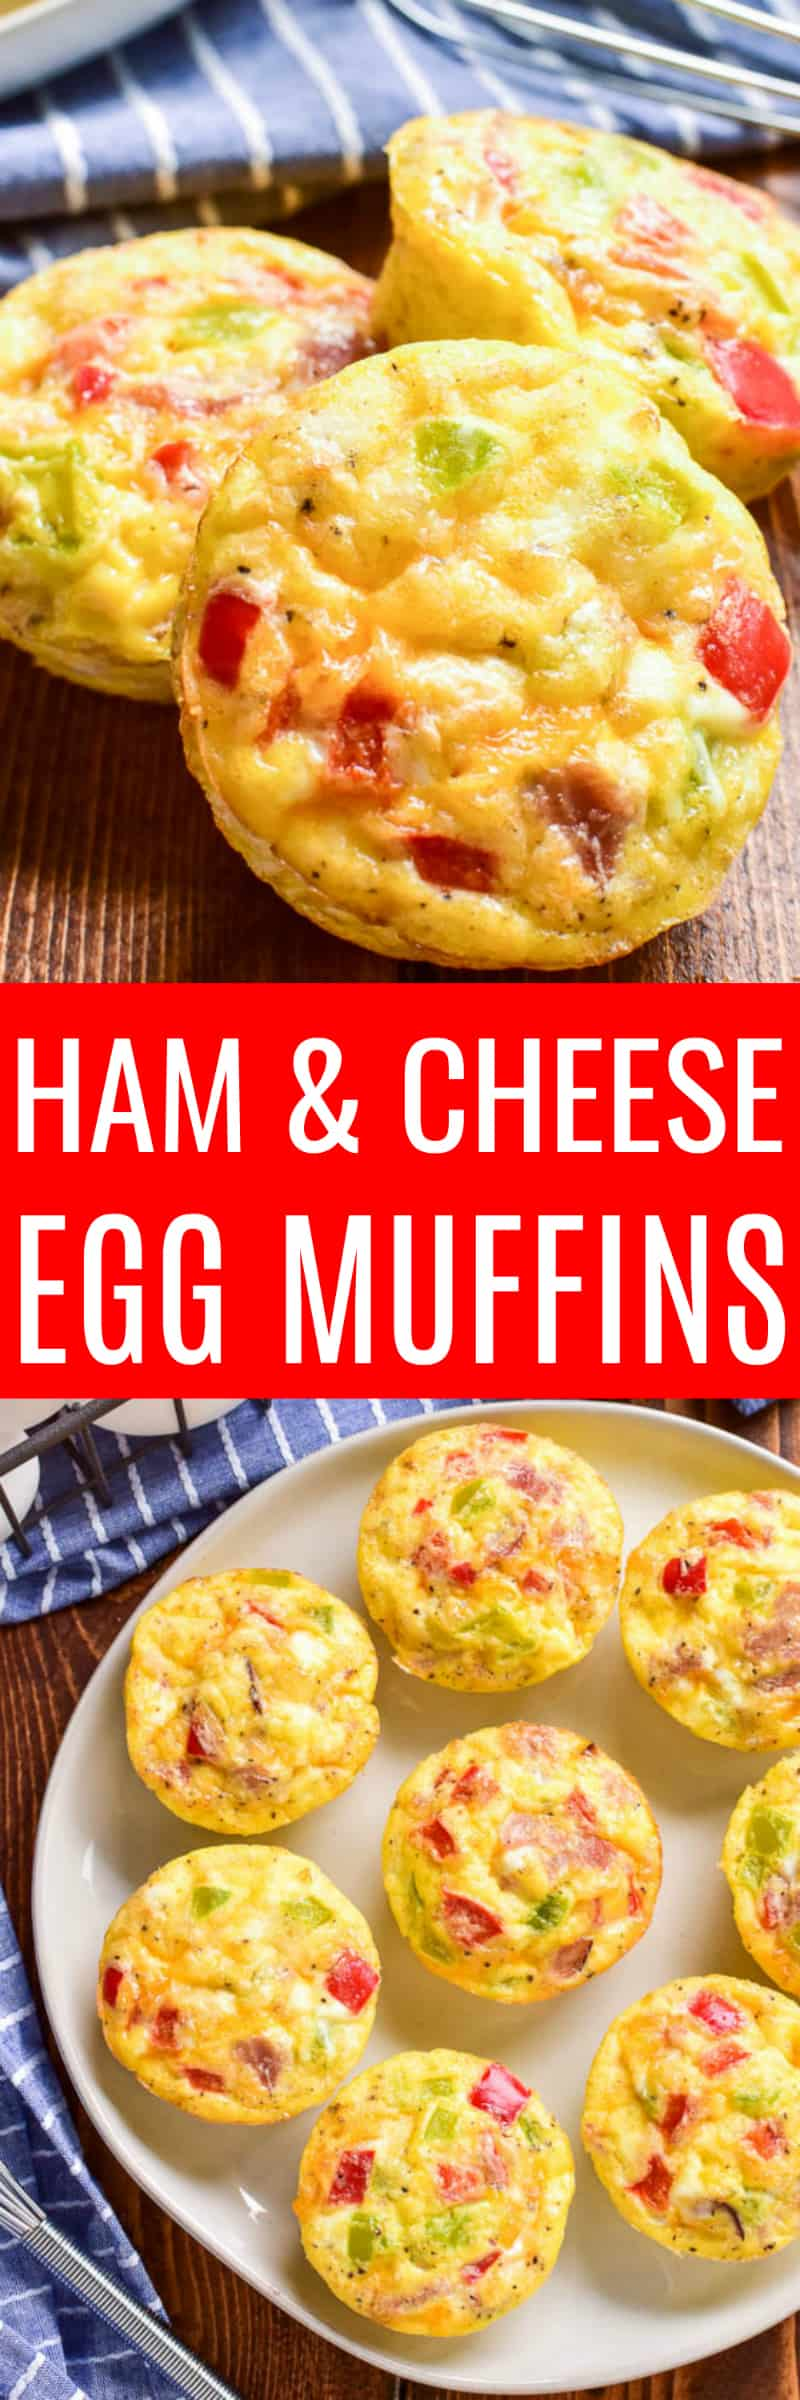 These Ham & Cheese Egg Muffins are perfect for busy mornings. Loaded with all the best breakfast ingredients, these muffins are an easy grab 'n go option that everyone loves!